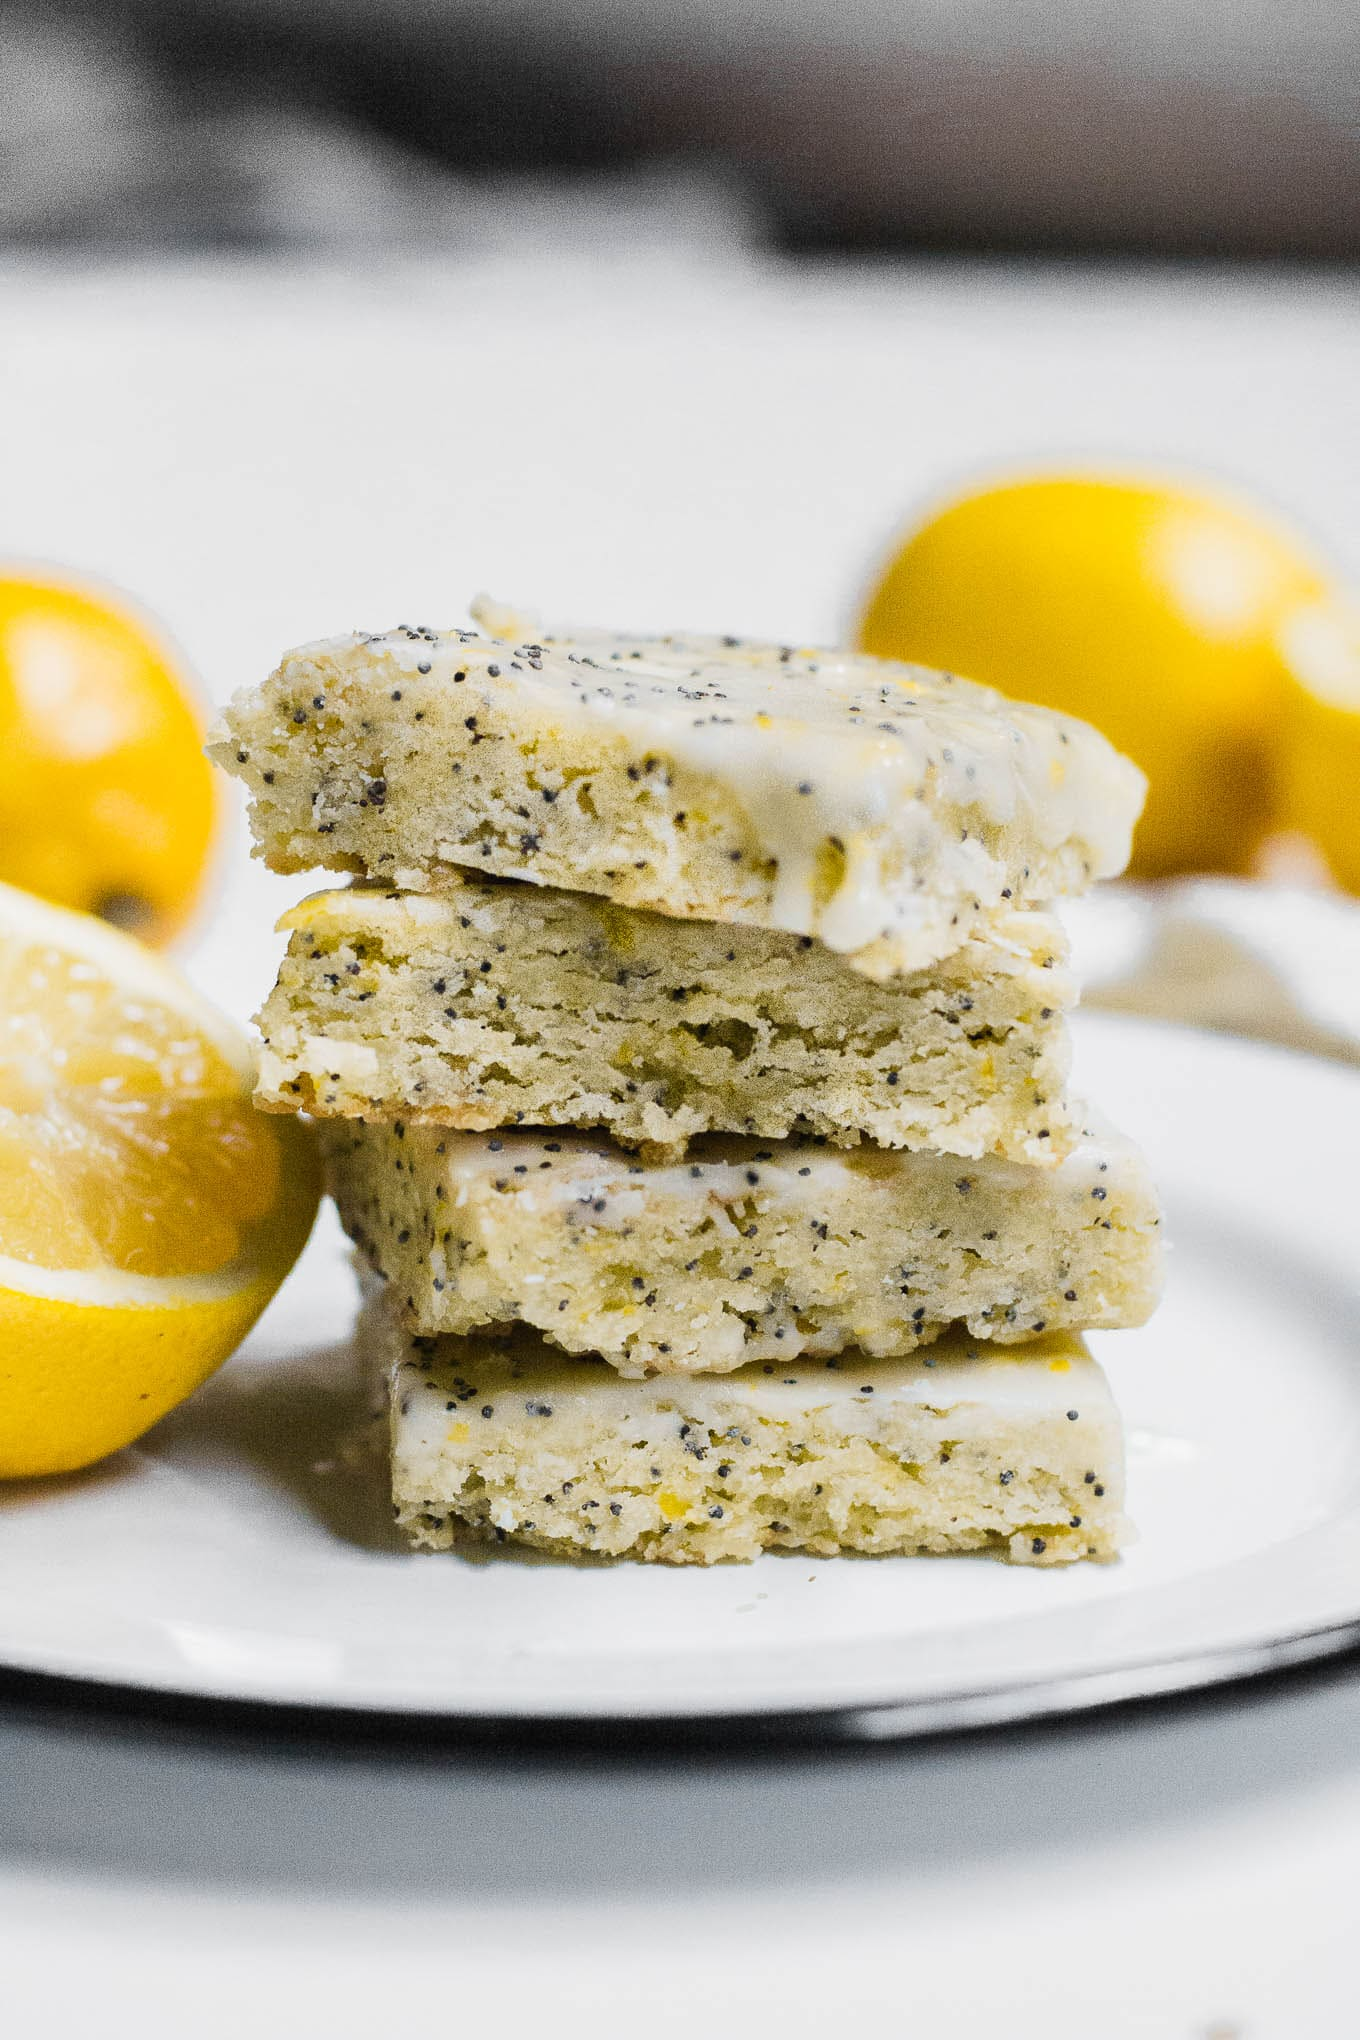 A front view of a stack of four gluten-free lemon poppy seed bars  with slices of lemon.